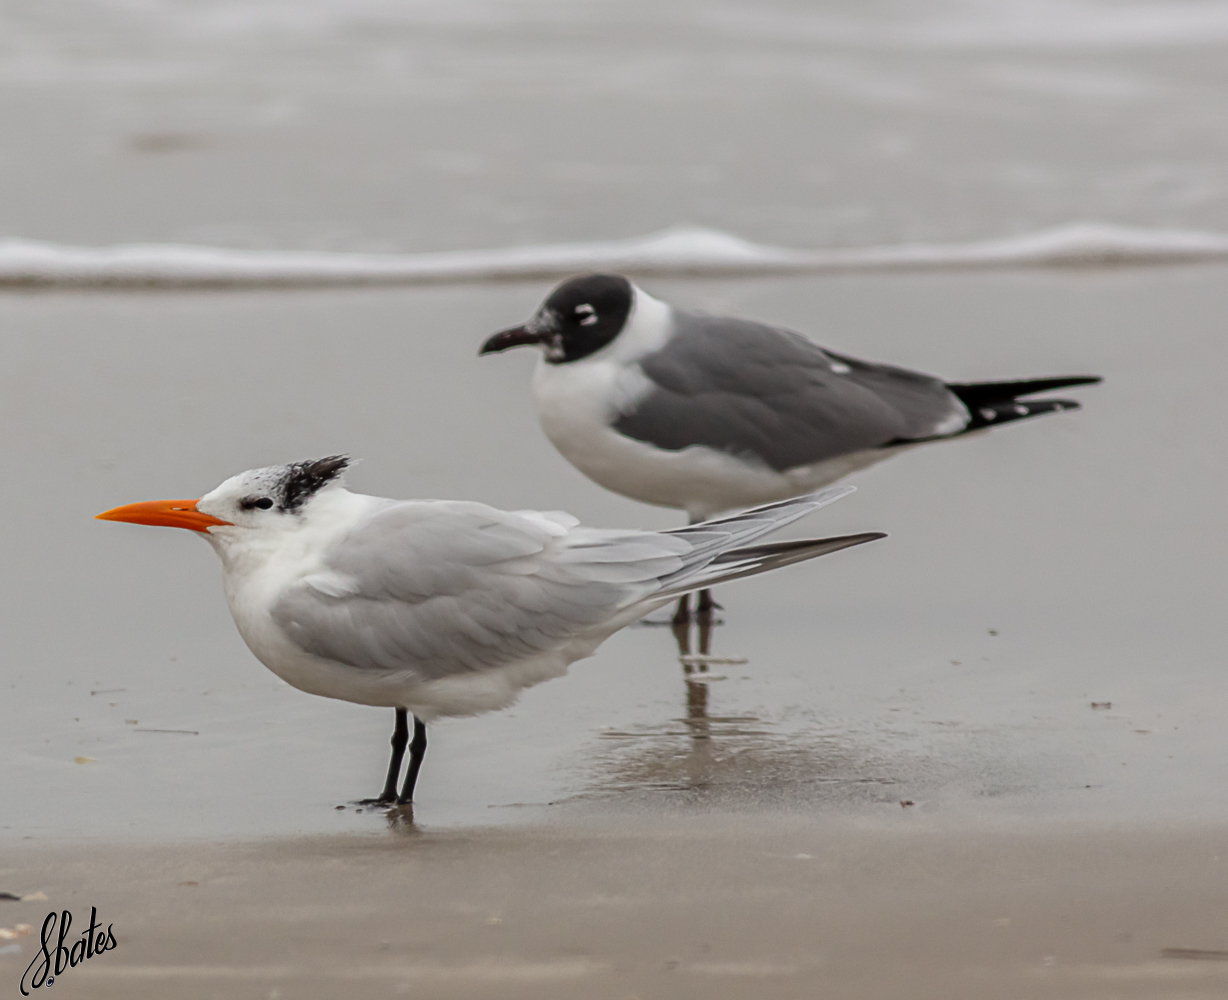 Front bird is a Kingfisher and the back bird is a Laughing Gull